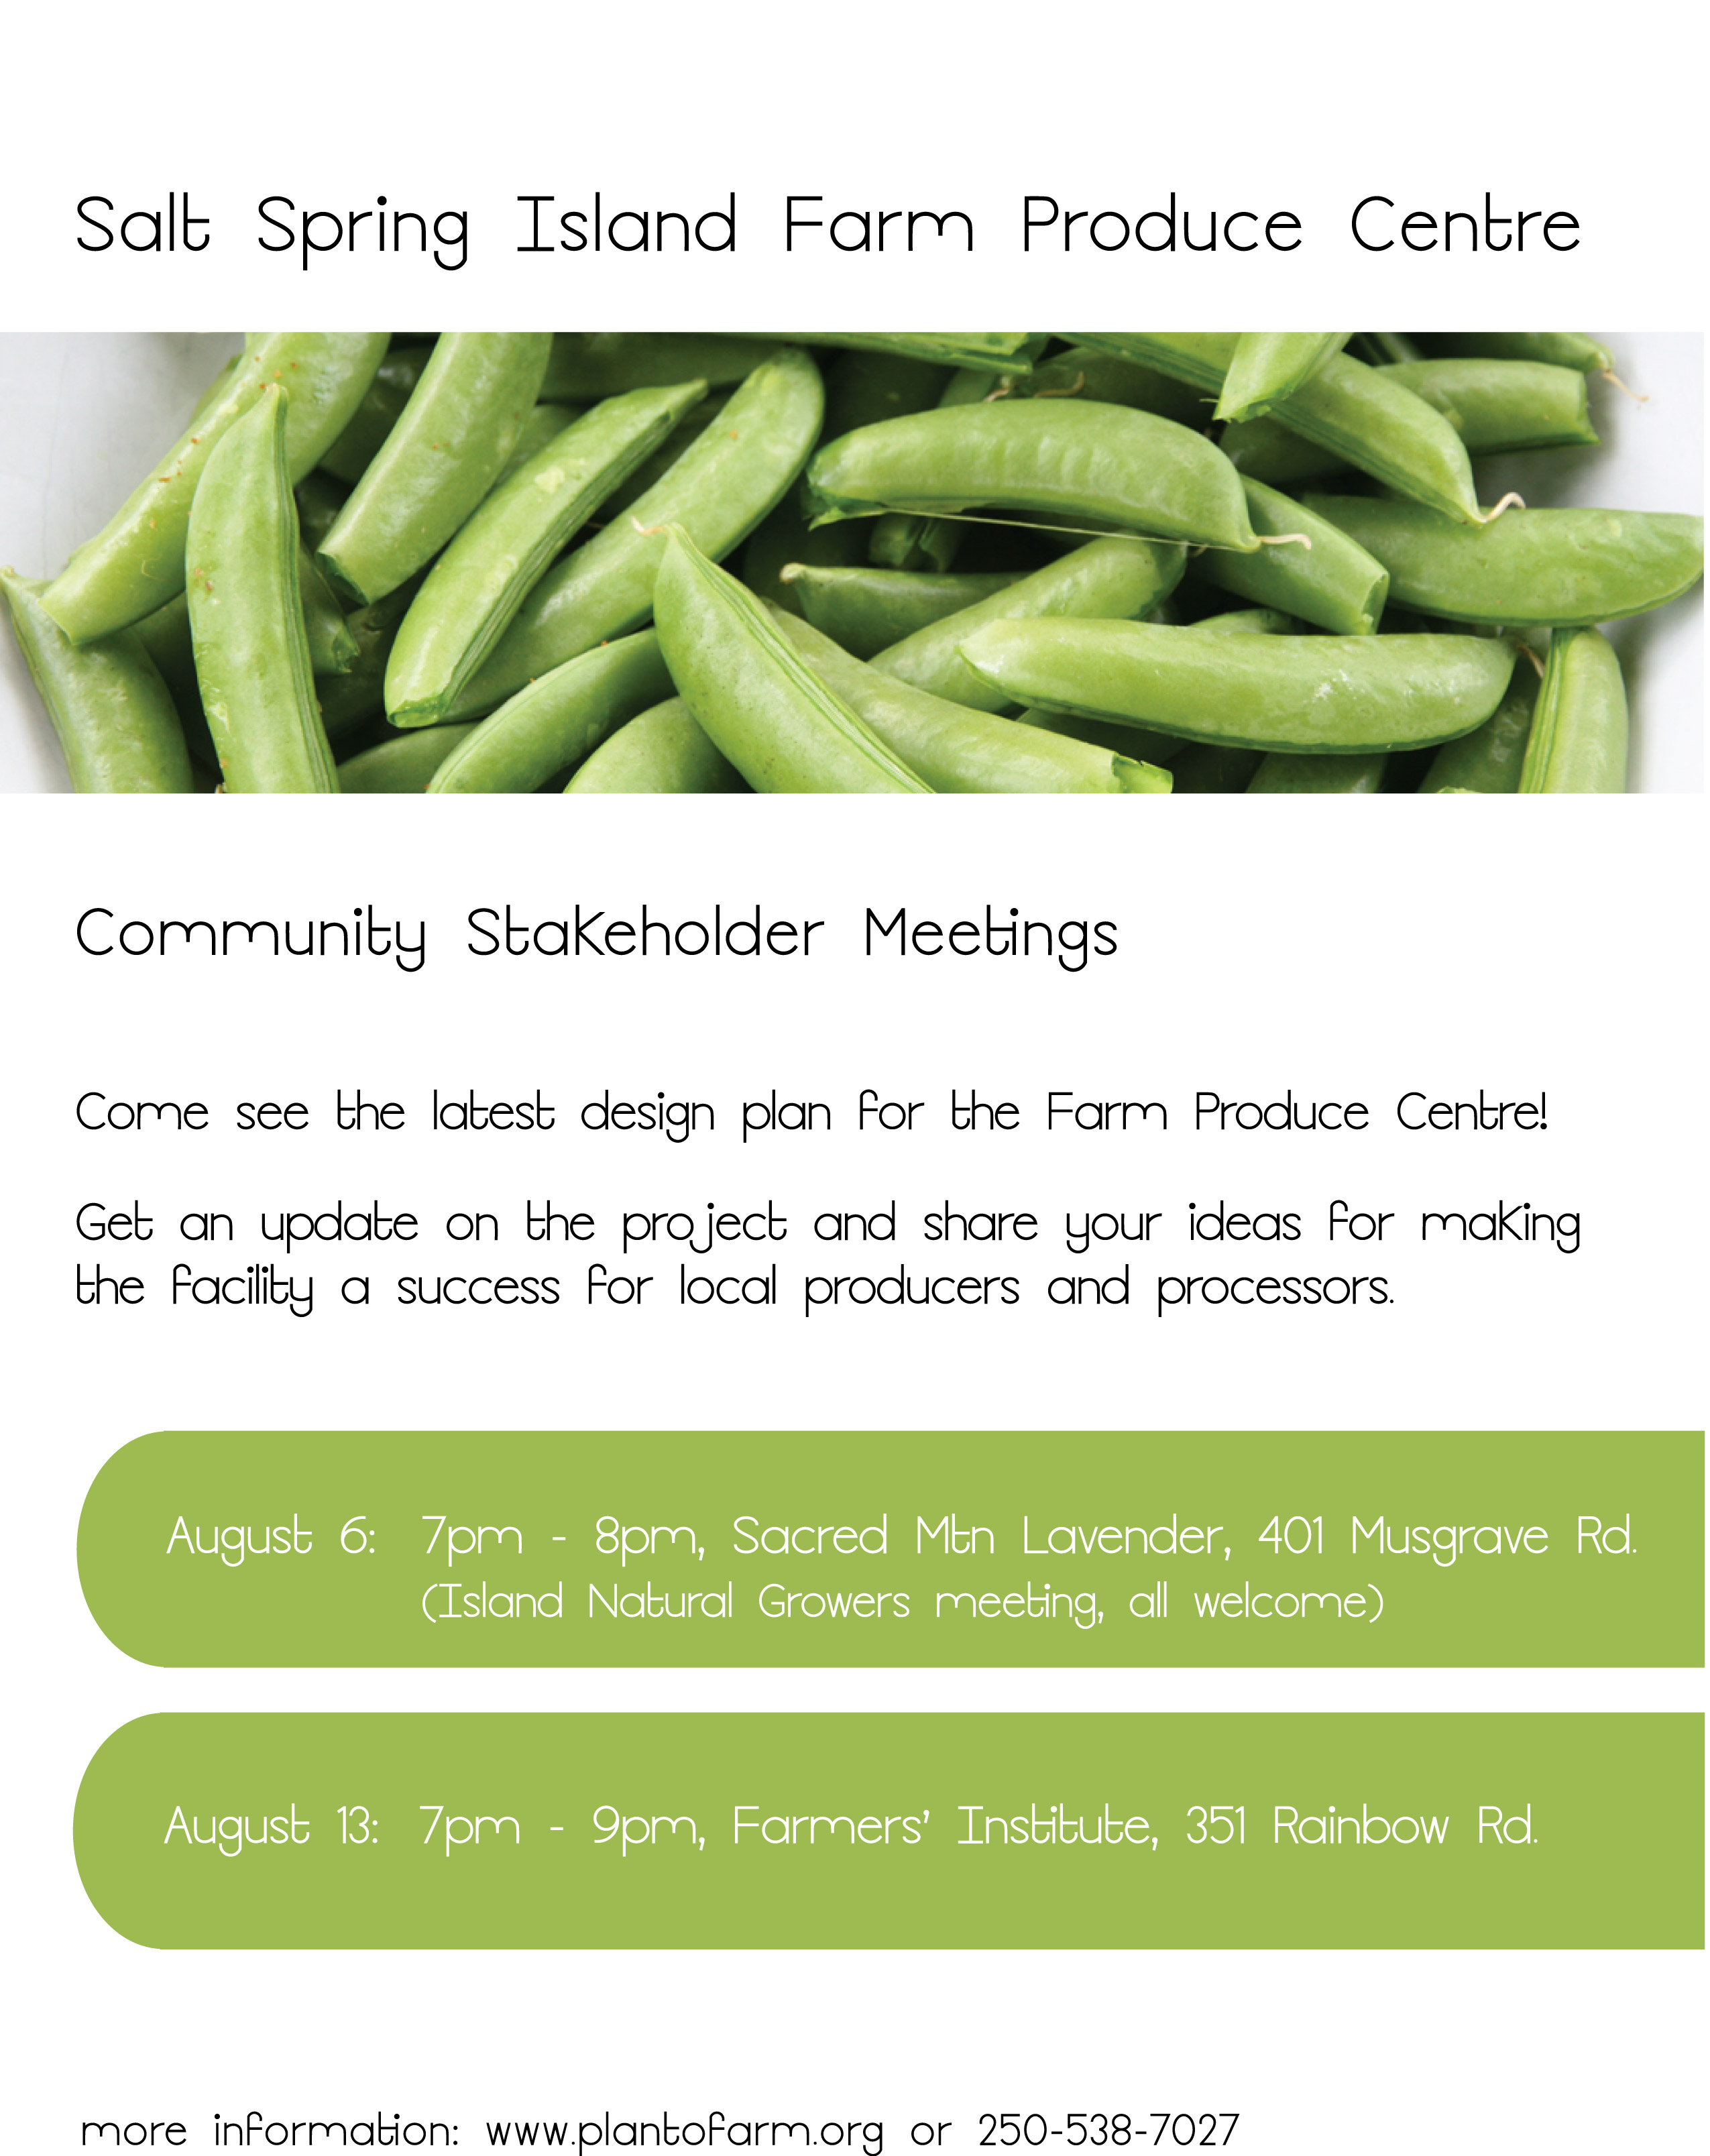 Produce Centre Public Meeting Announced